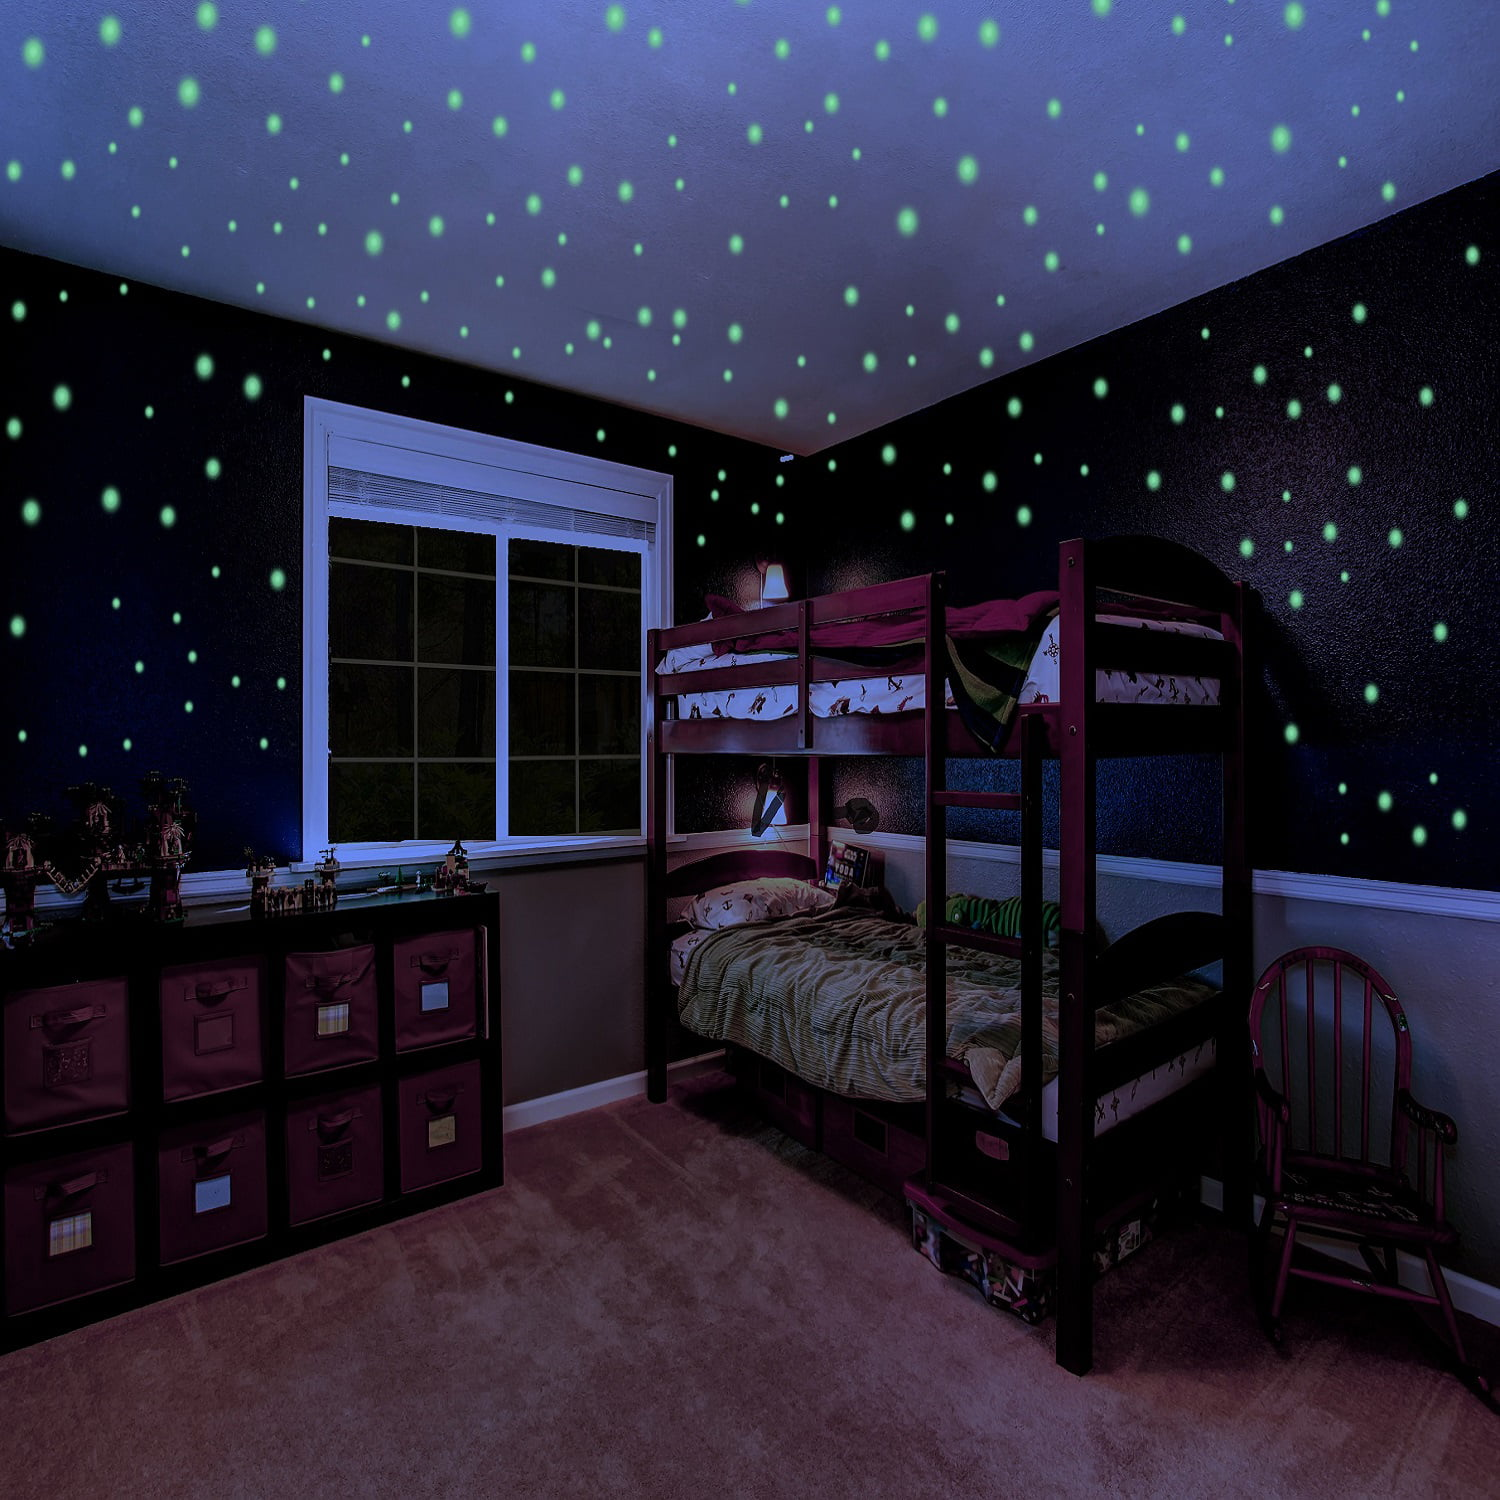 Glow in the Dark Stars for Kids Self Adhesive Glowing Star Decal for  Children\'s Bedrooms Glow In The Dark Star Ceiling and Wall Stickers 732 3D  ...